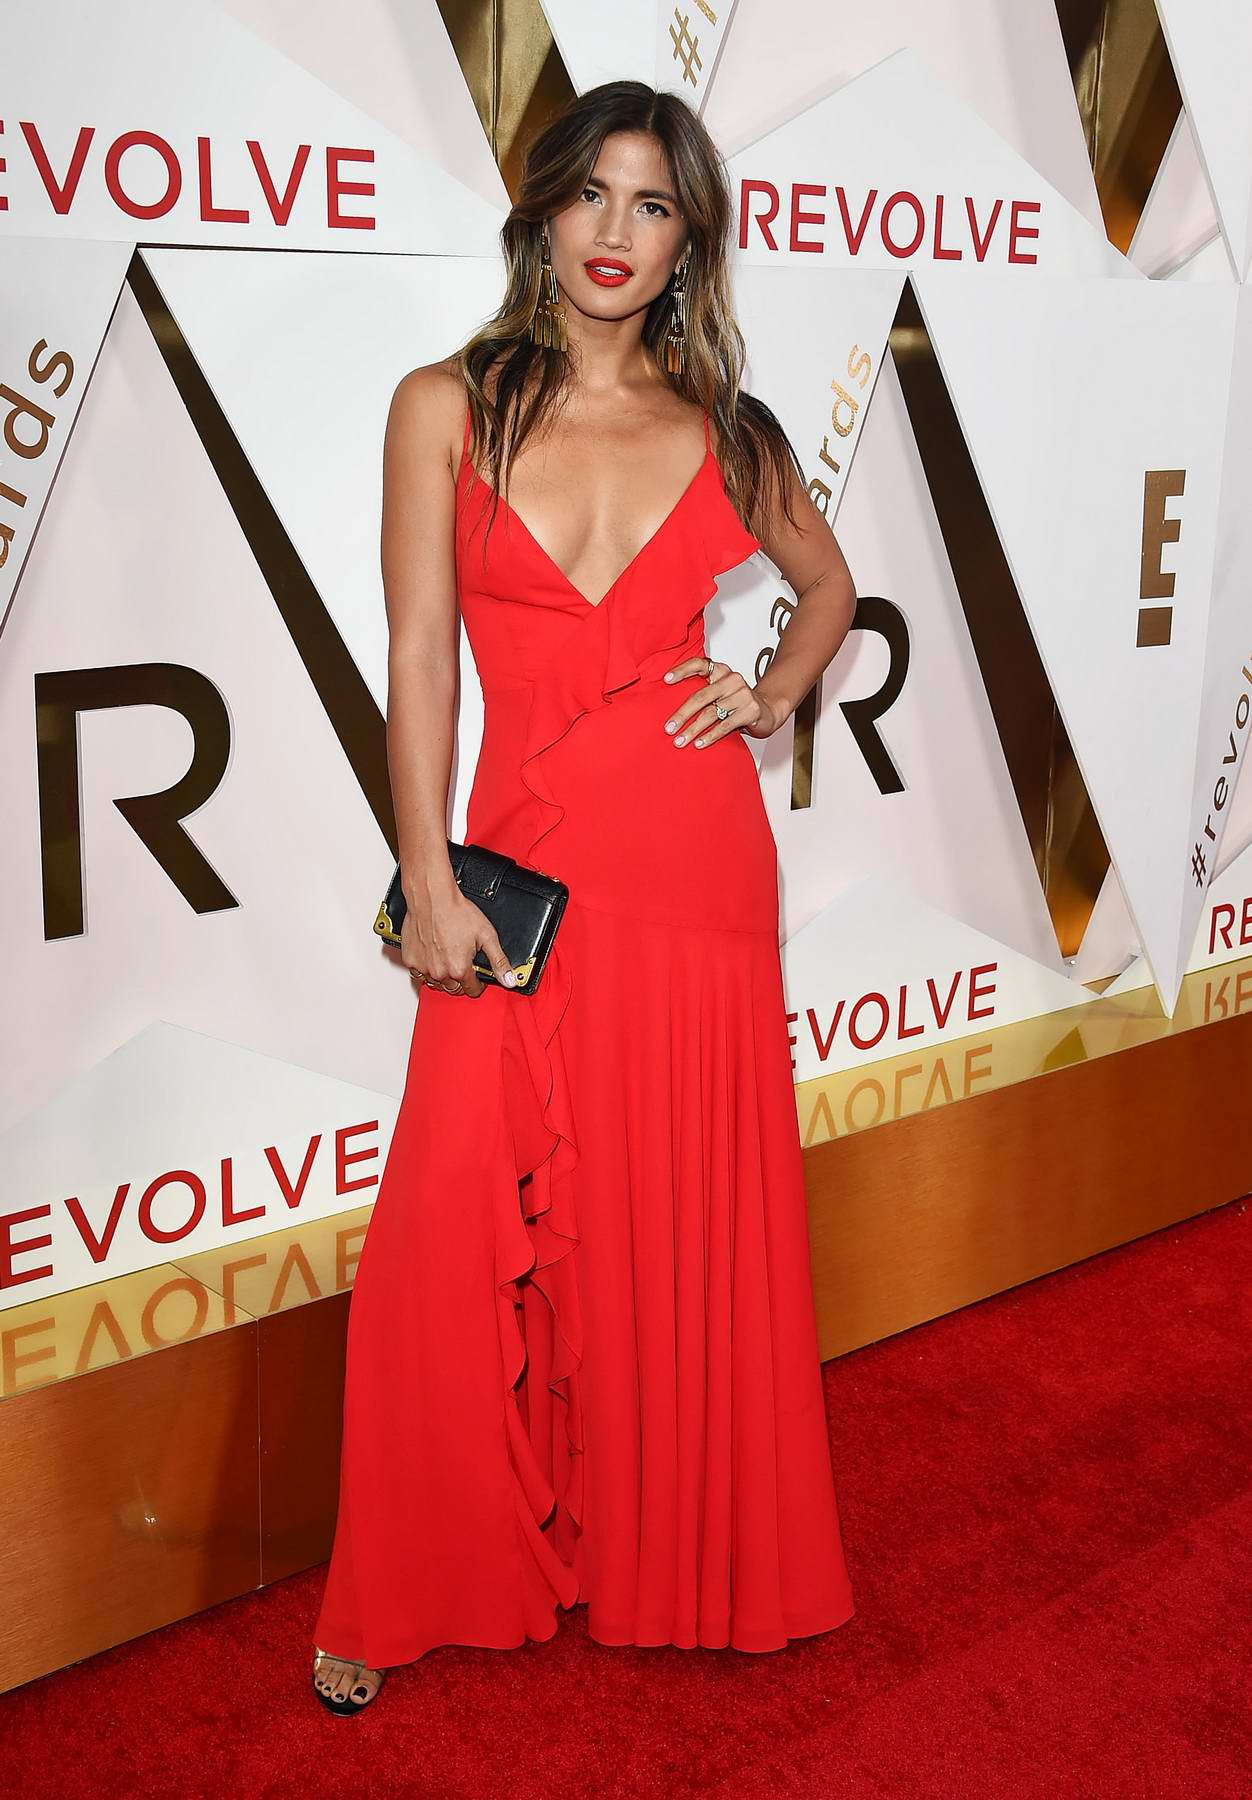 Rocky Barnes at the REVOLVE Awards in Los Angeles